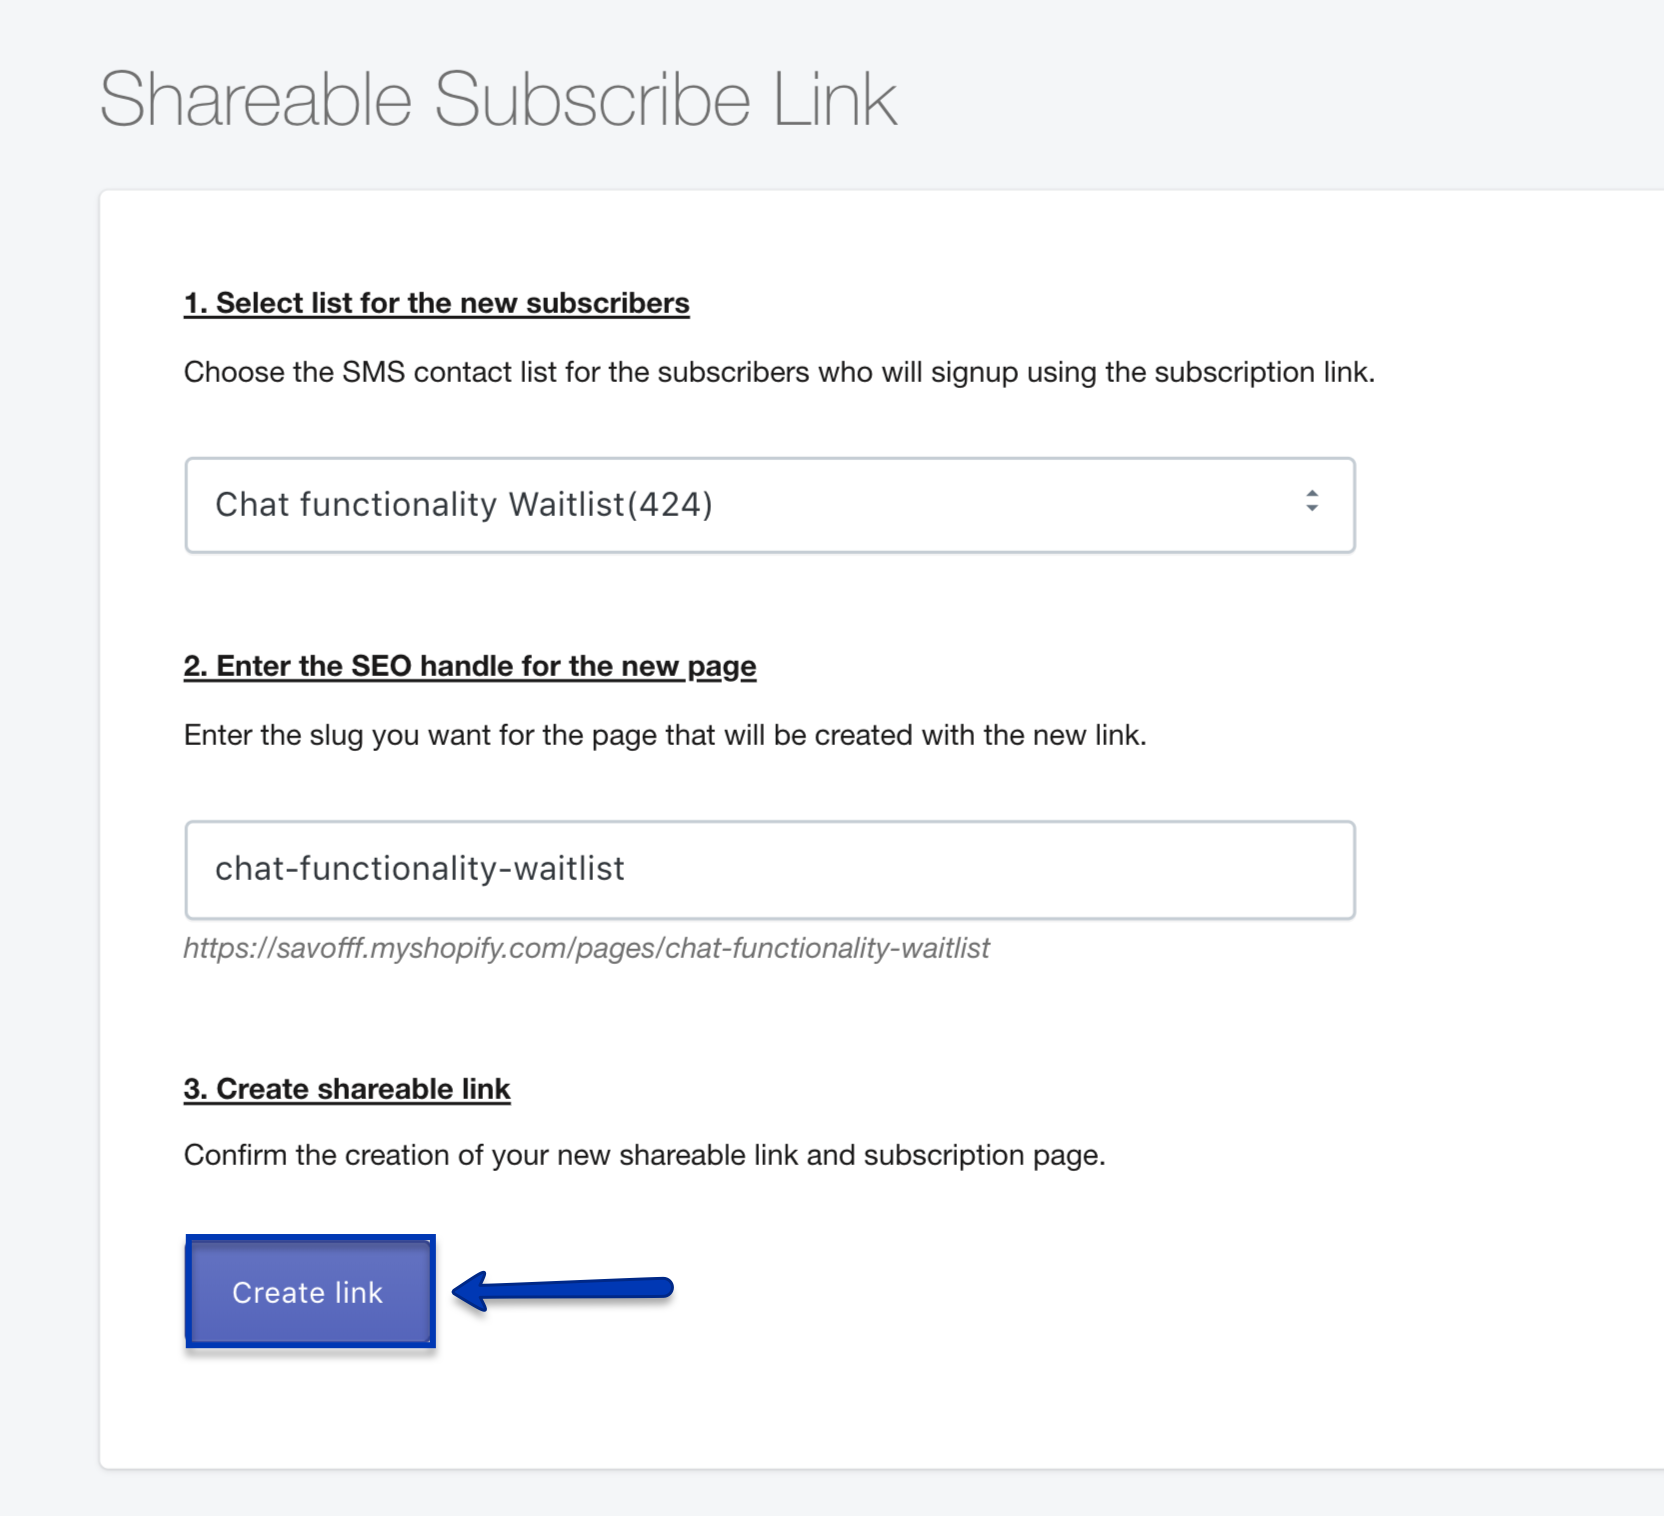 4-create-link-shareable-smsbump